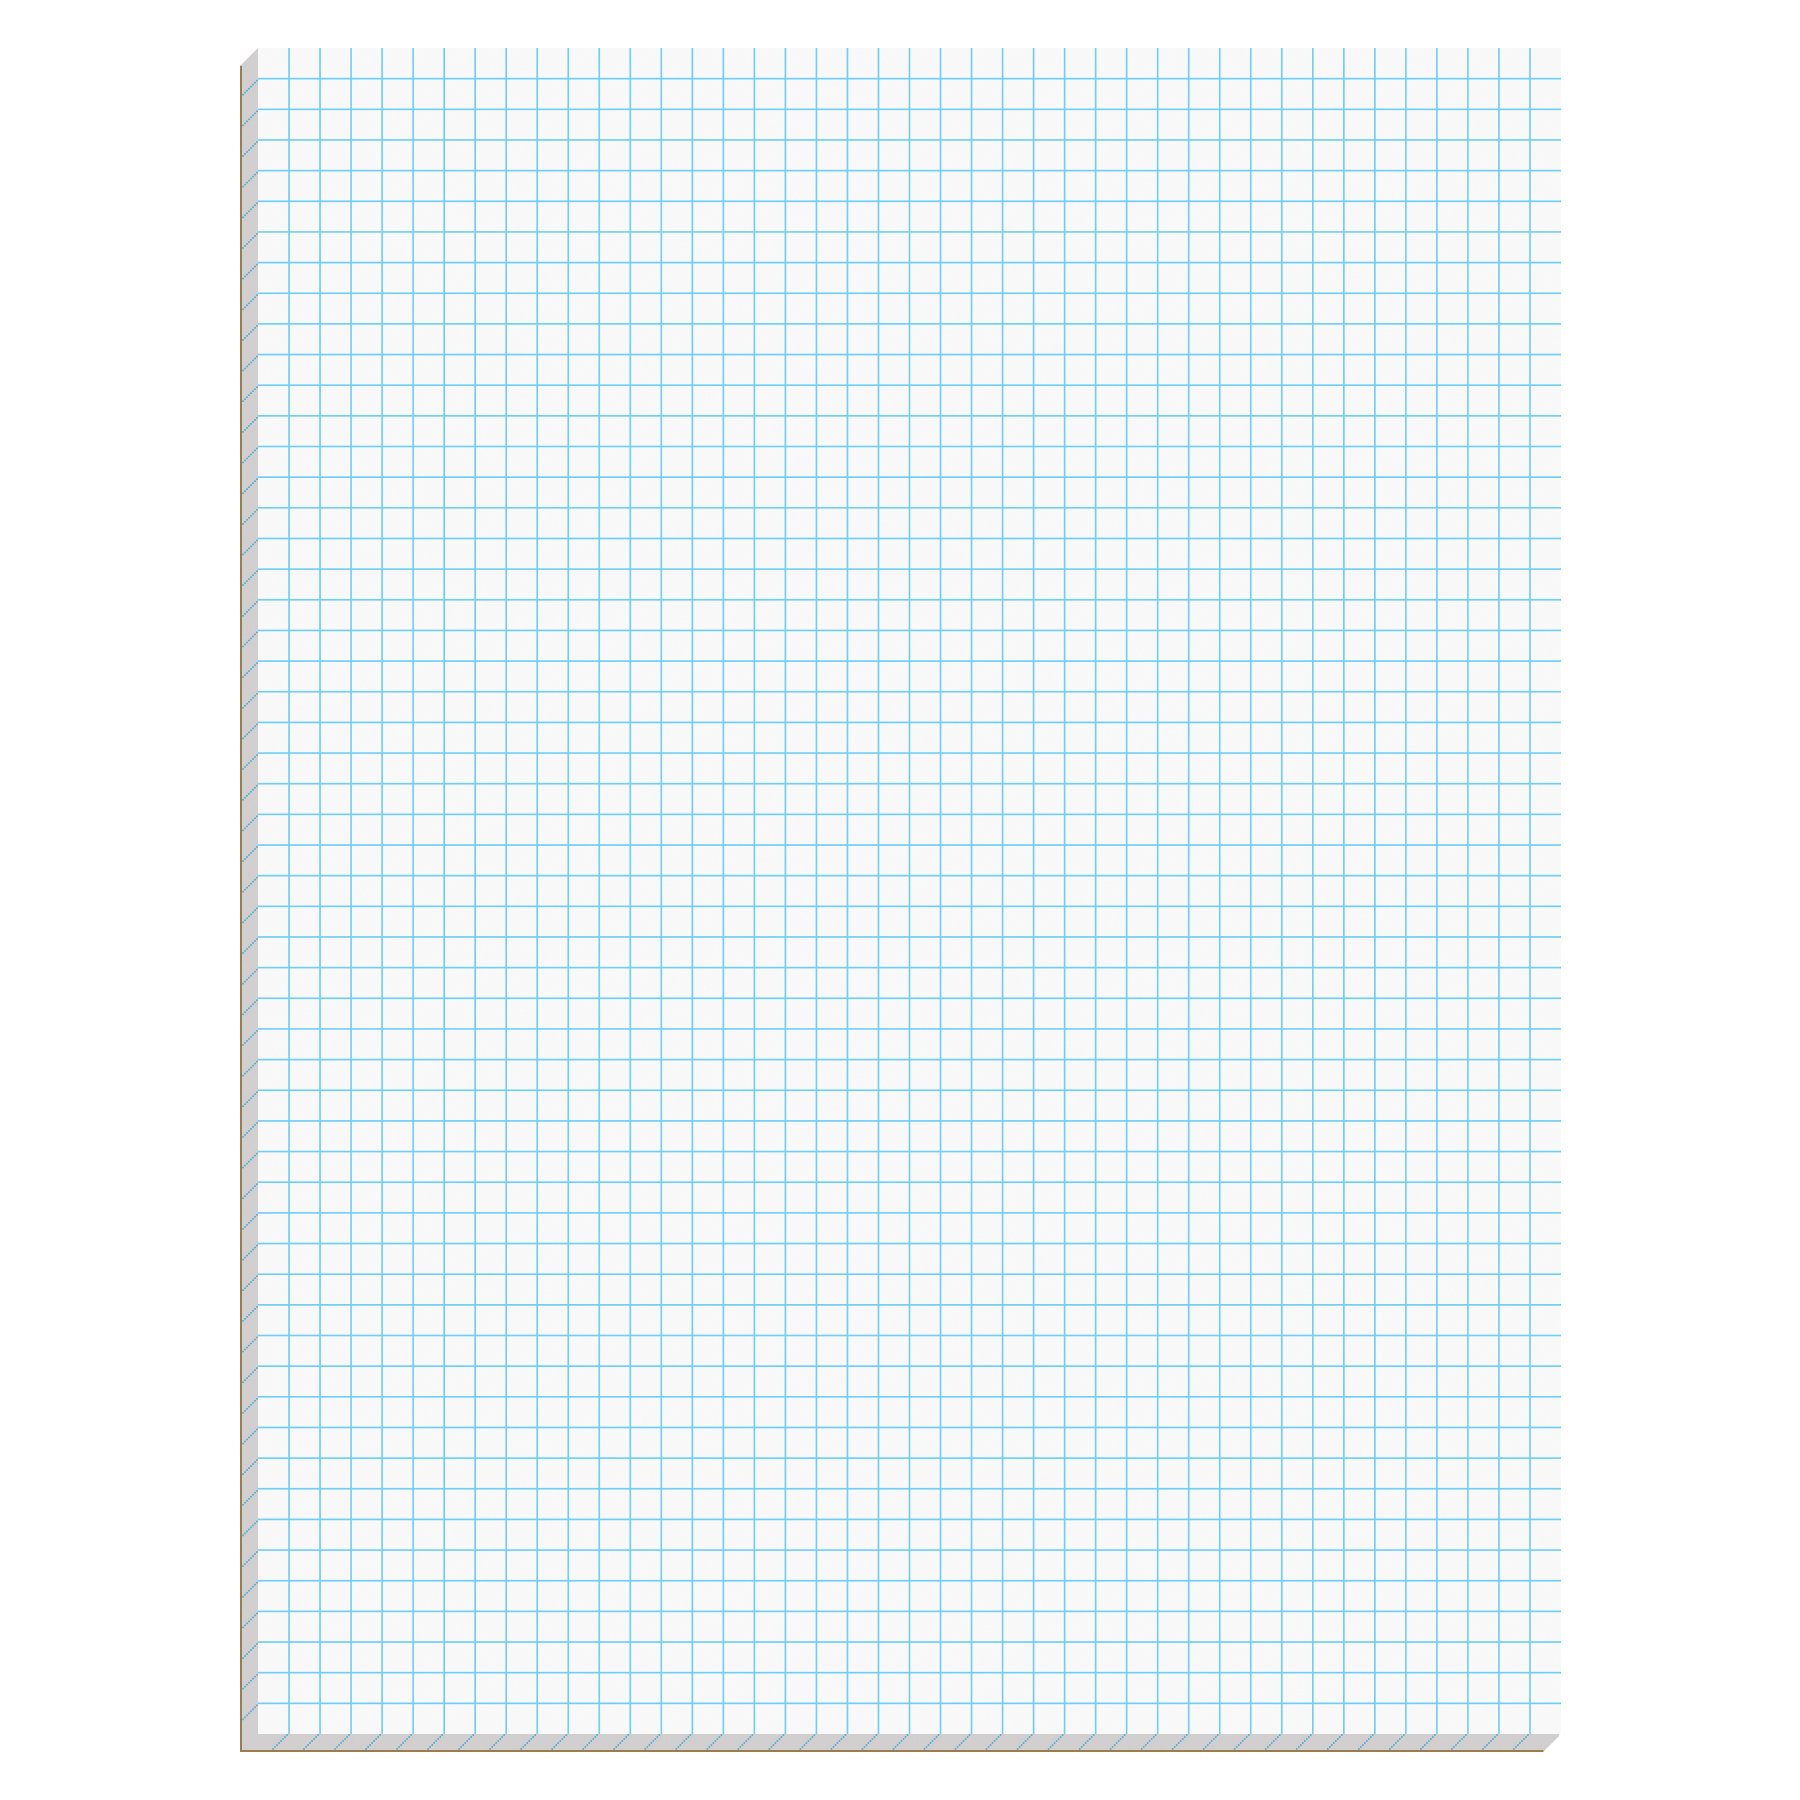 Ampad Efficiency Quadrille Pad, 8-1/2 x 11, White, 5x5, 50 Sheets per Pad, 10 Pads per Pack (22-032C) by Ampad